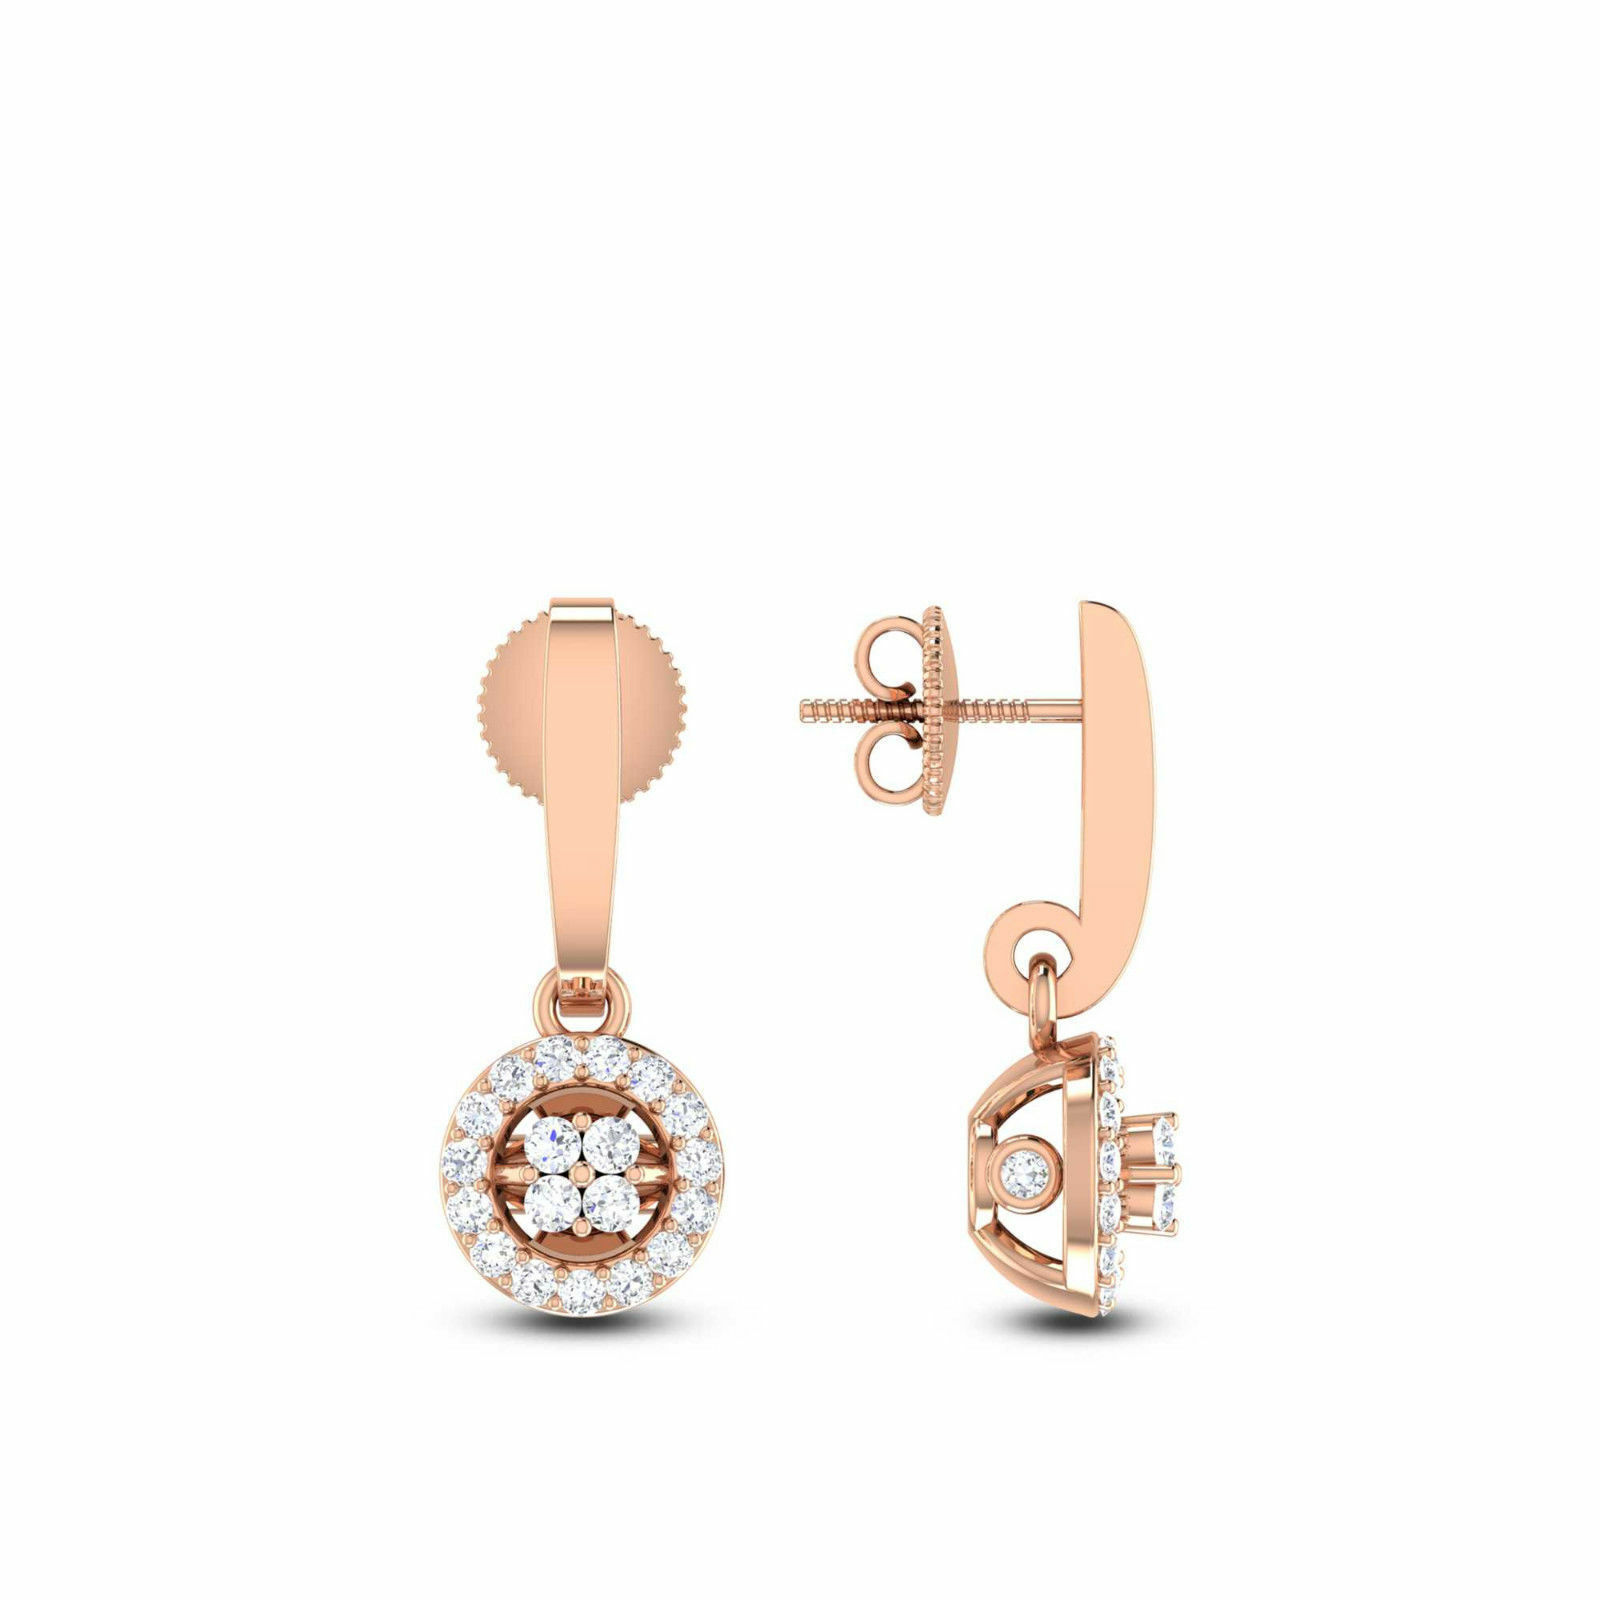 Pave 0.60 Cts Natural Diamonds Stud Earrings In Solid Certified 14K pink gold